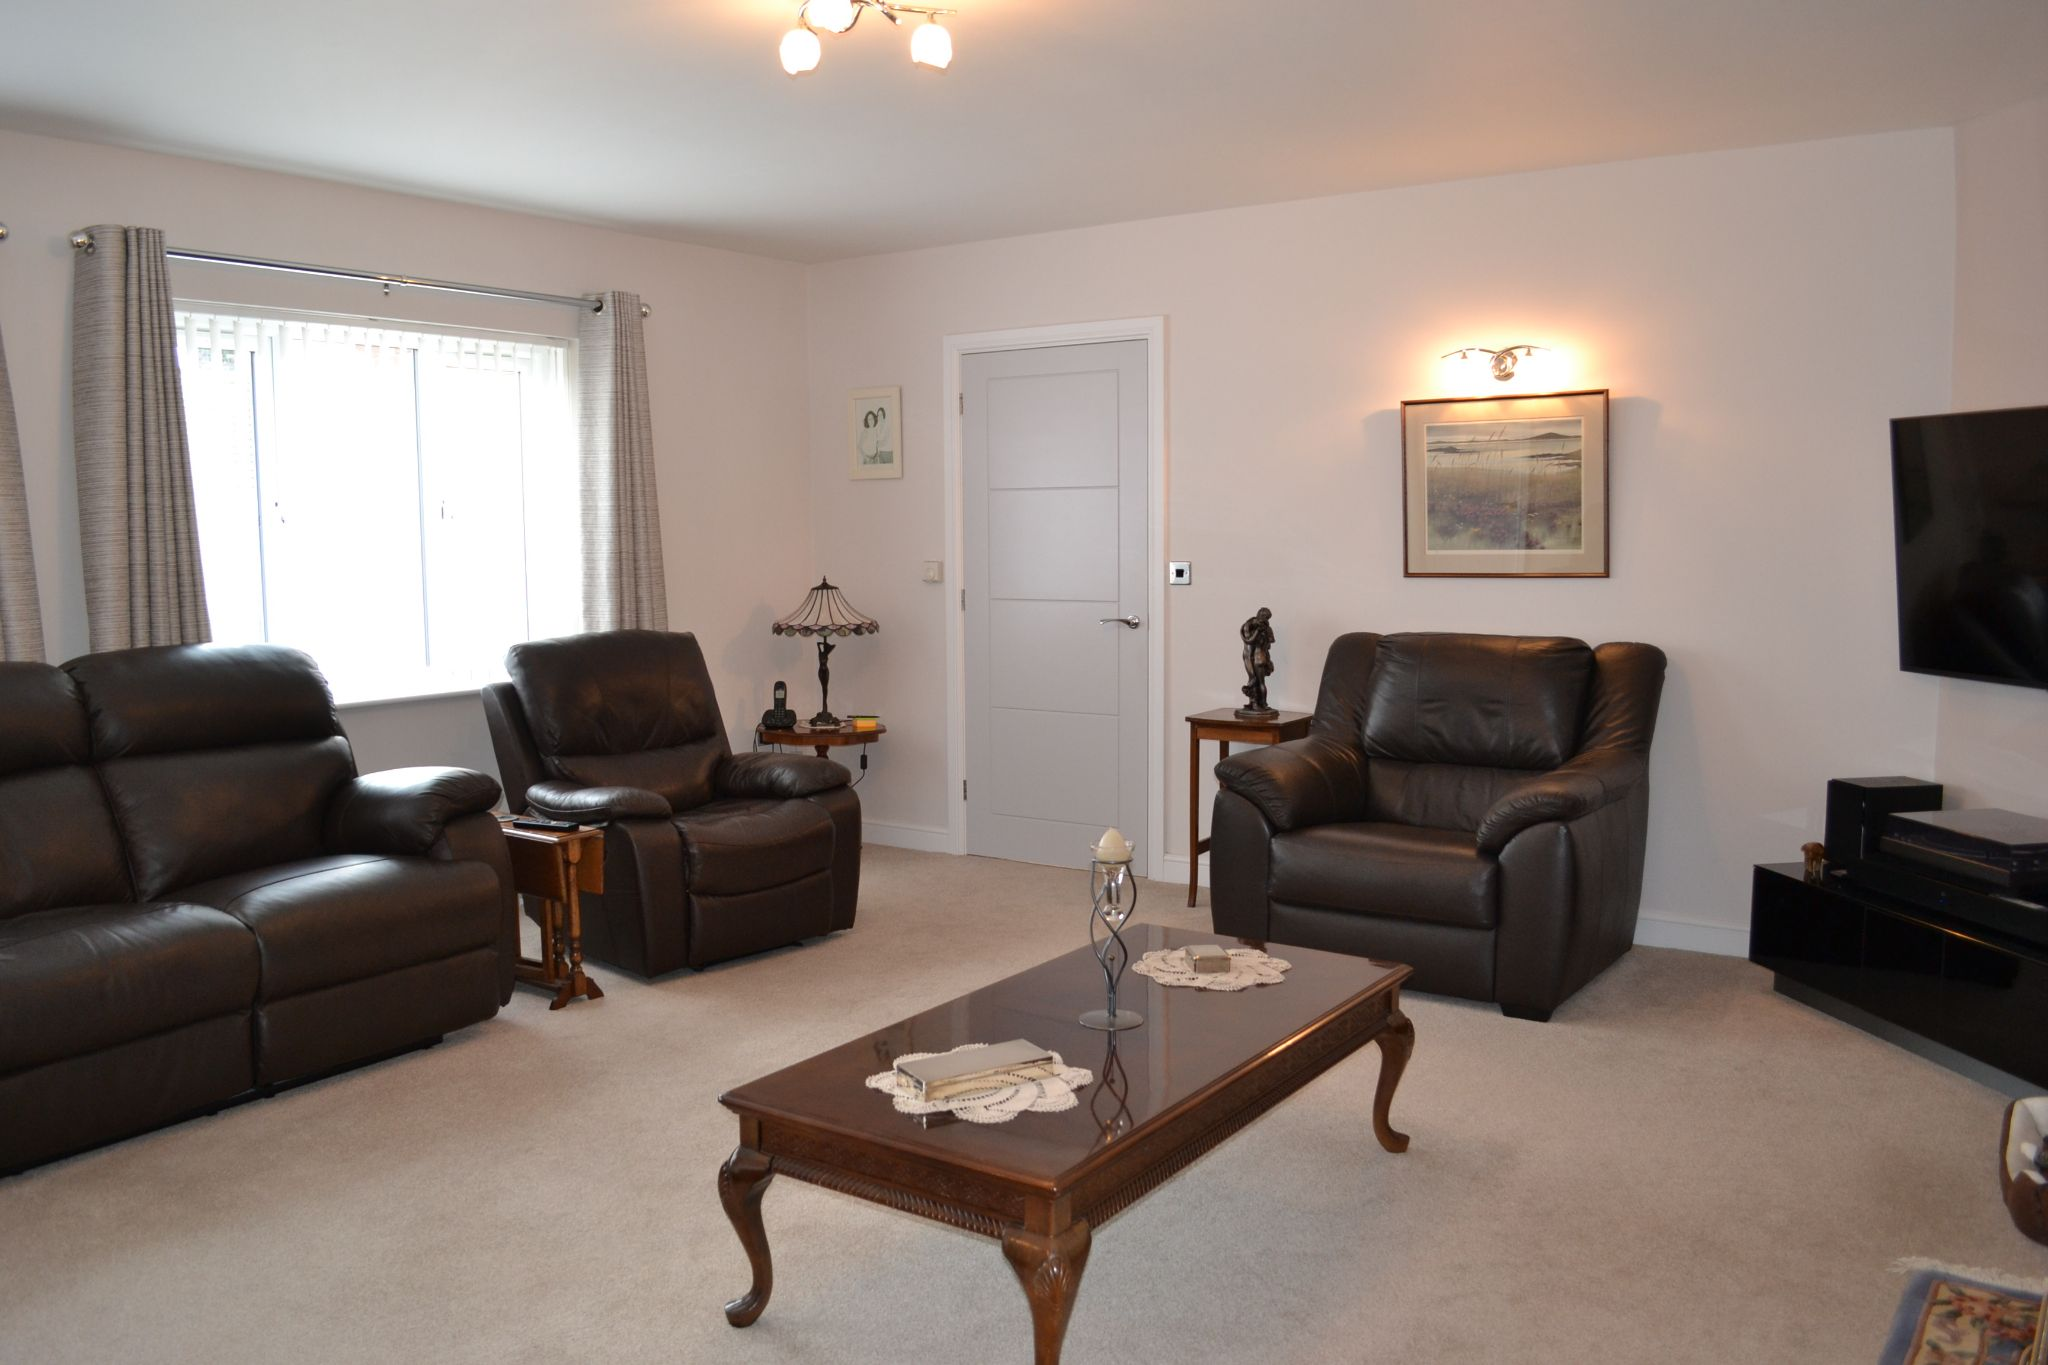 4 bedroom detached bungalow SSTC in Castletown - Property photograph